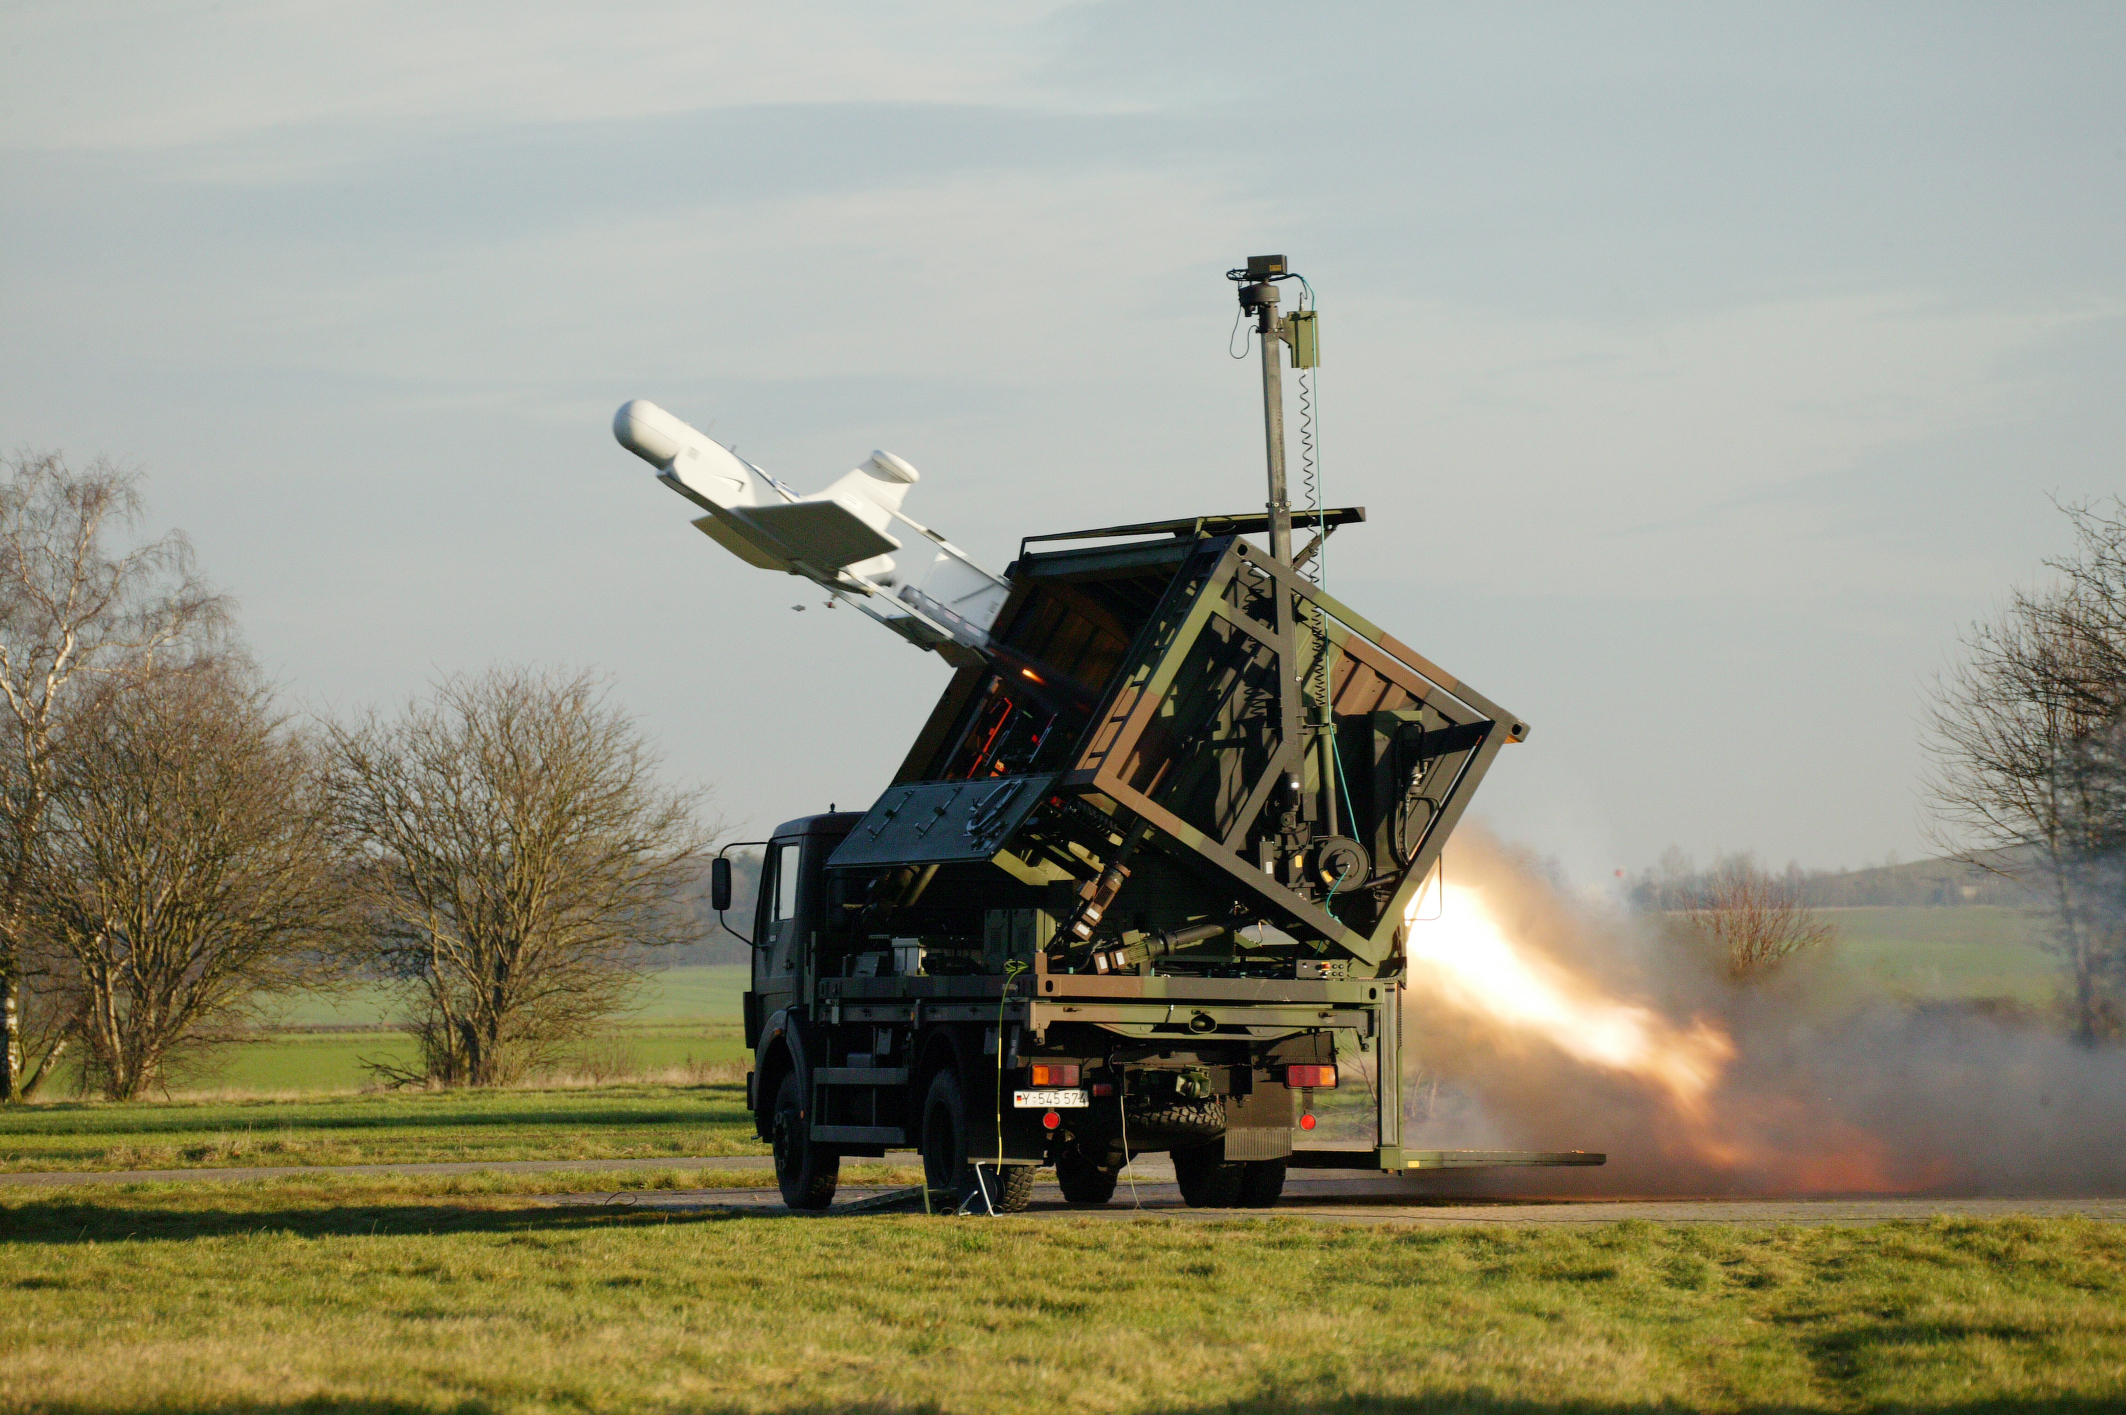 German uav kzo reconnaissance HD Wallpaper